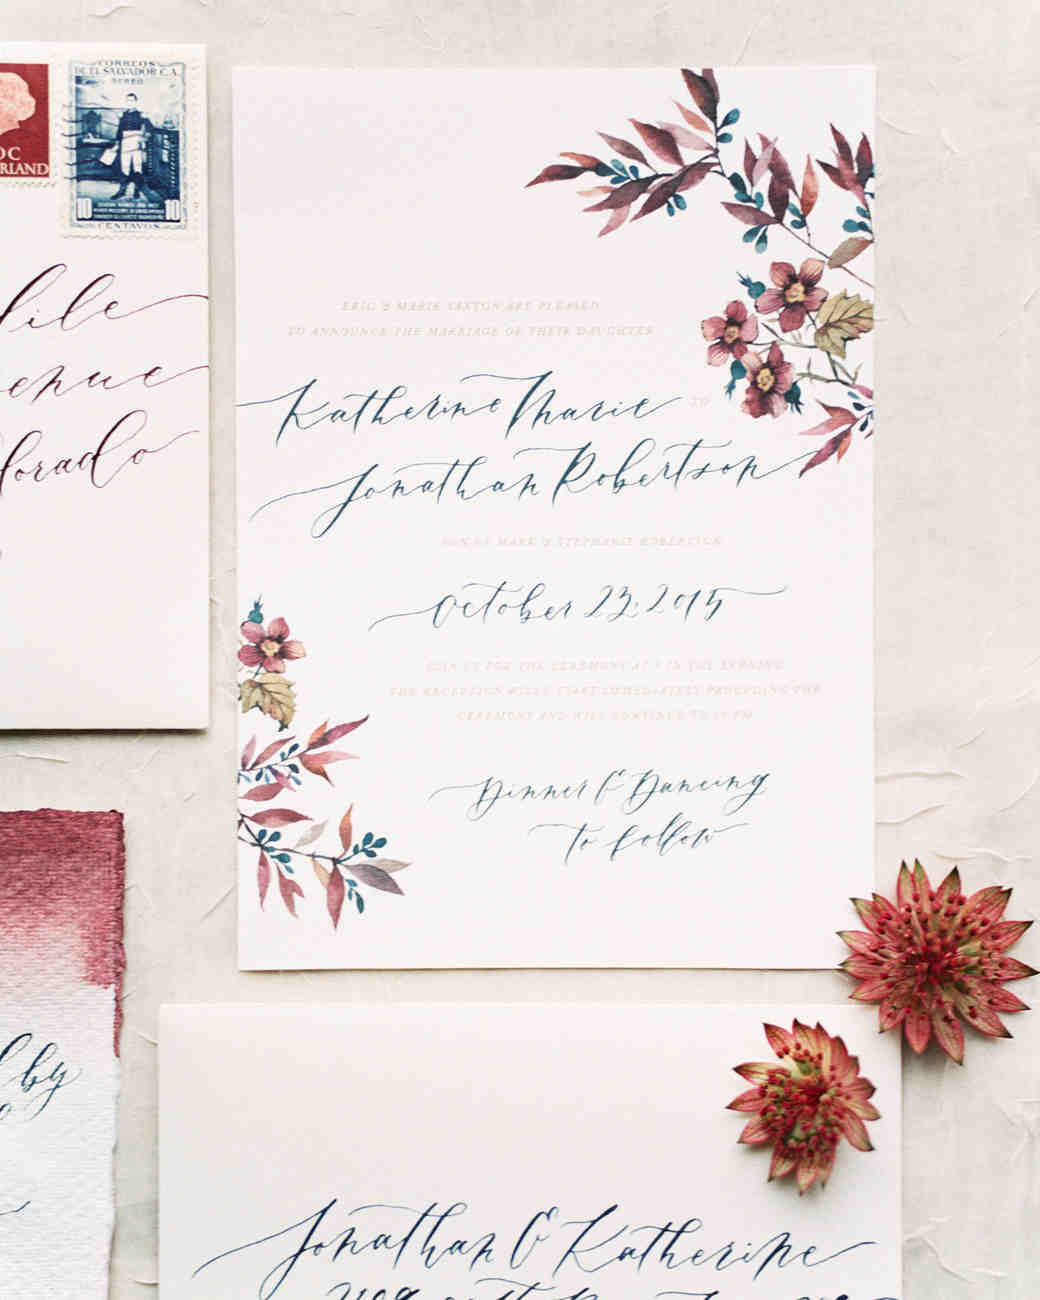 The loveliest watercolor wedding invitations martha stewart weddings red blue white and green watercolor wedding invitations junglespirit Image collections